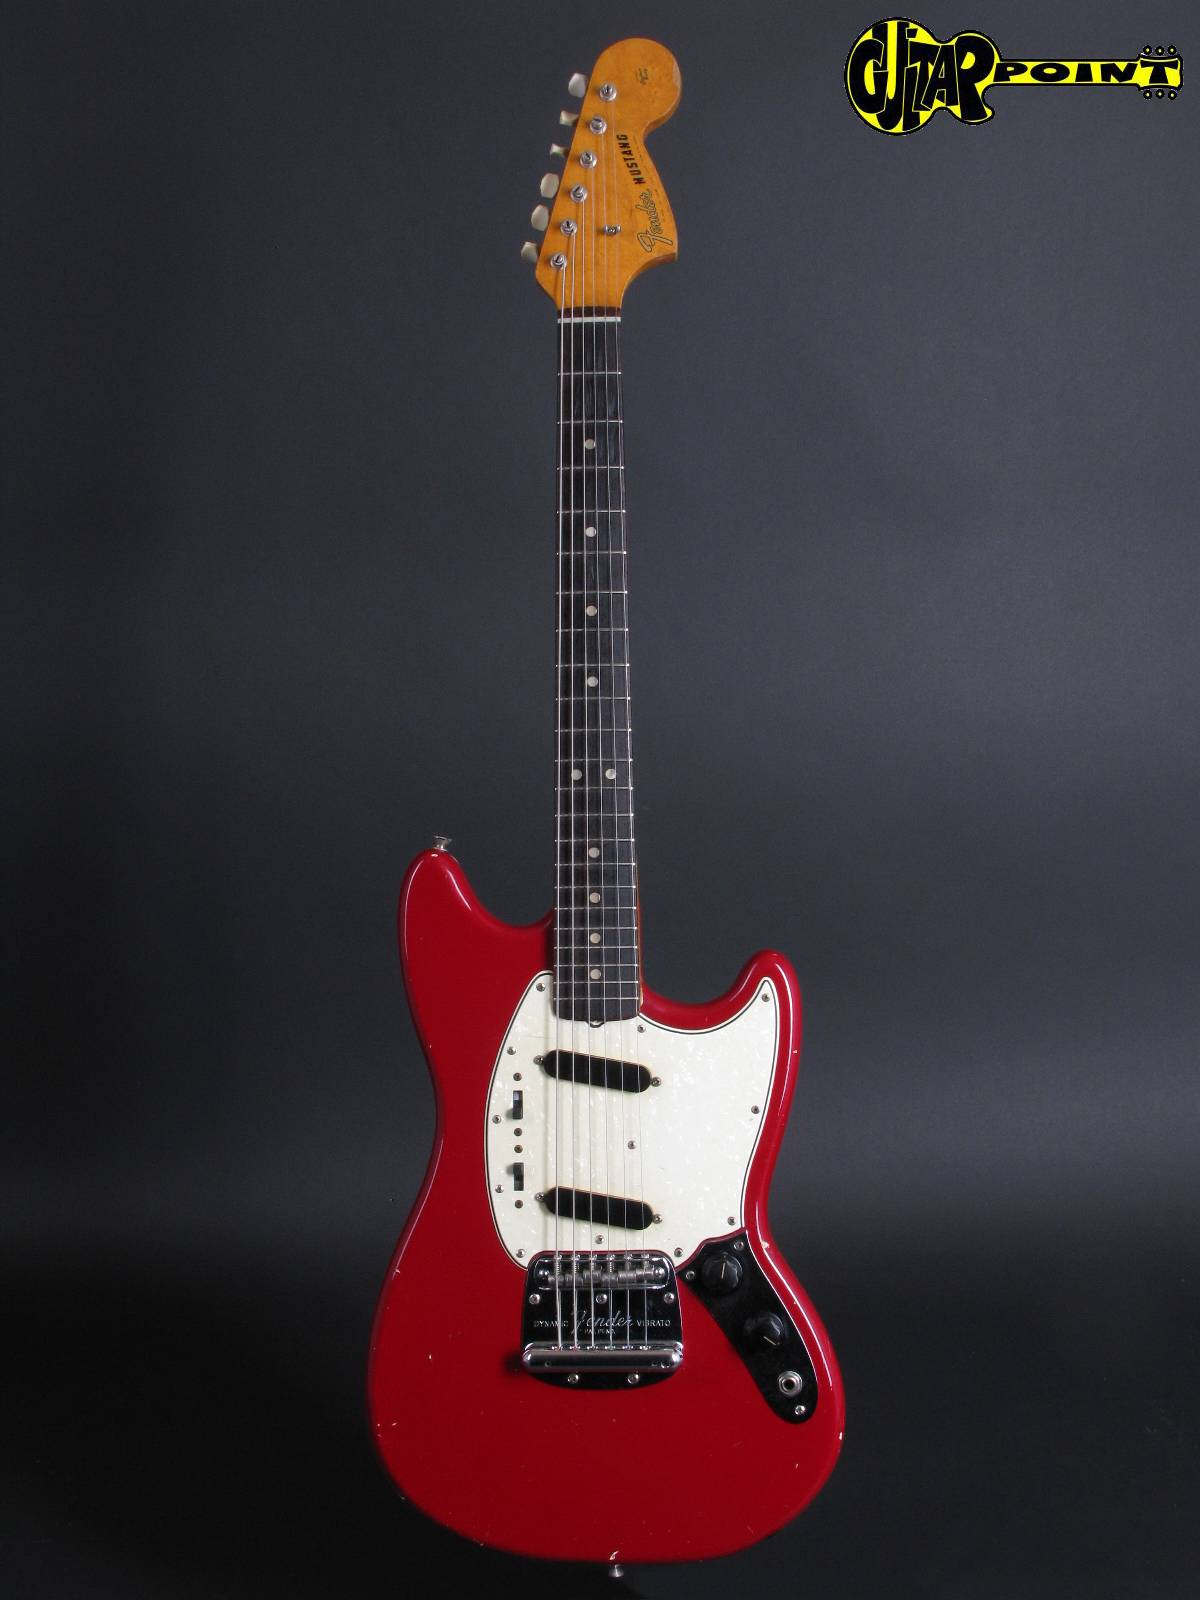 Fender Guitars Images Mustang HD Wallpaper And Background Photos